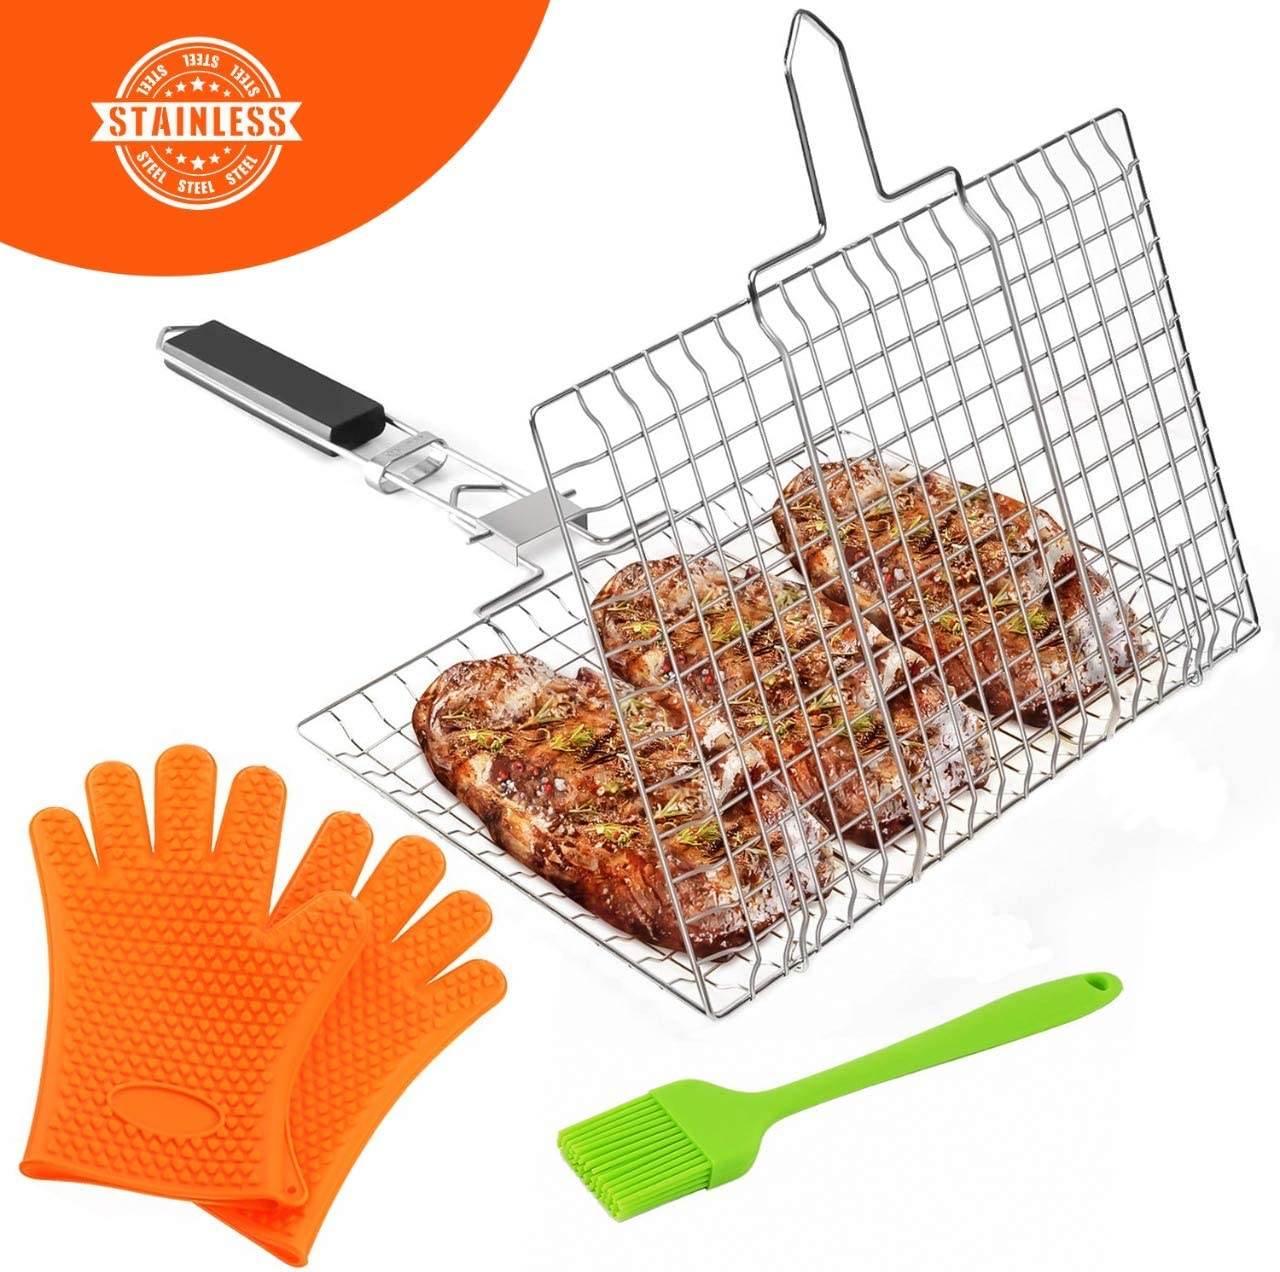 Dartt Fish Grill Basket Stainless Steel - Non-Stick Folding Lightweight BBQ Grill - Flexible Lockable Grill Grate, Gloves & Busting Brush Fish, Meat and Vegetables – Dishwasher Safe & Rust Free